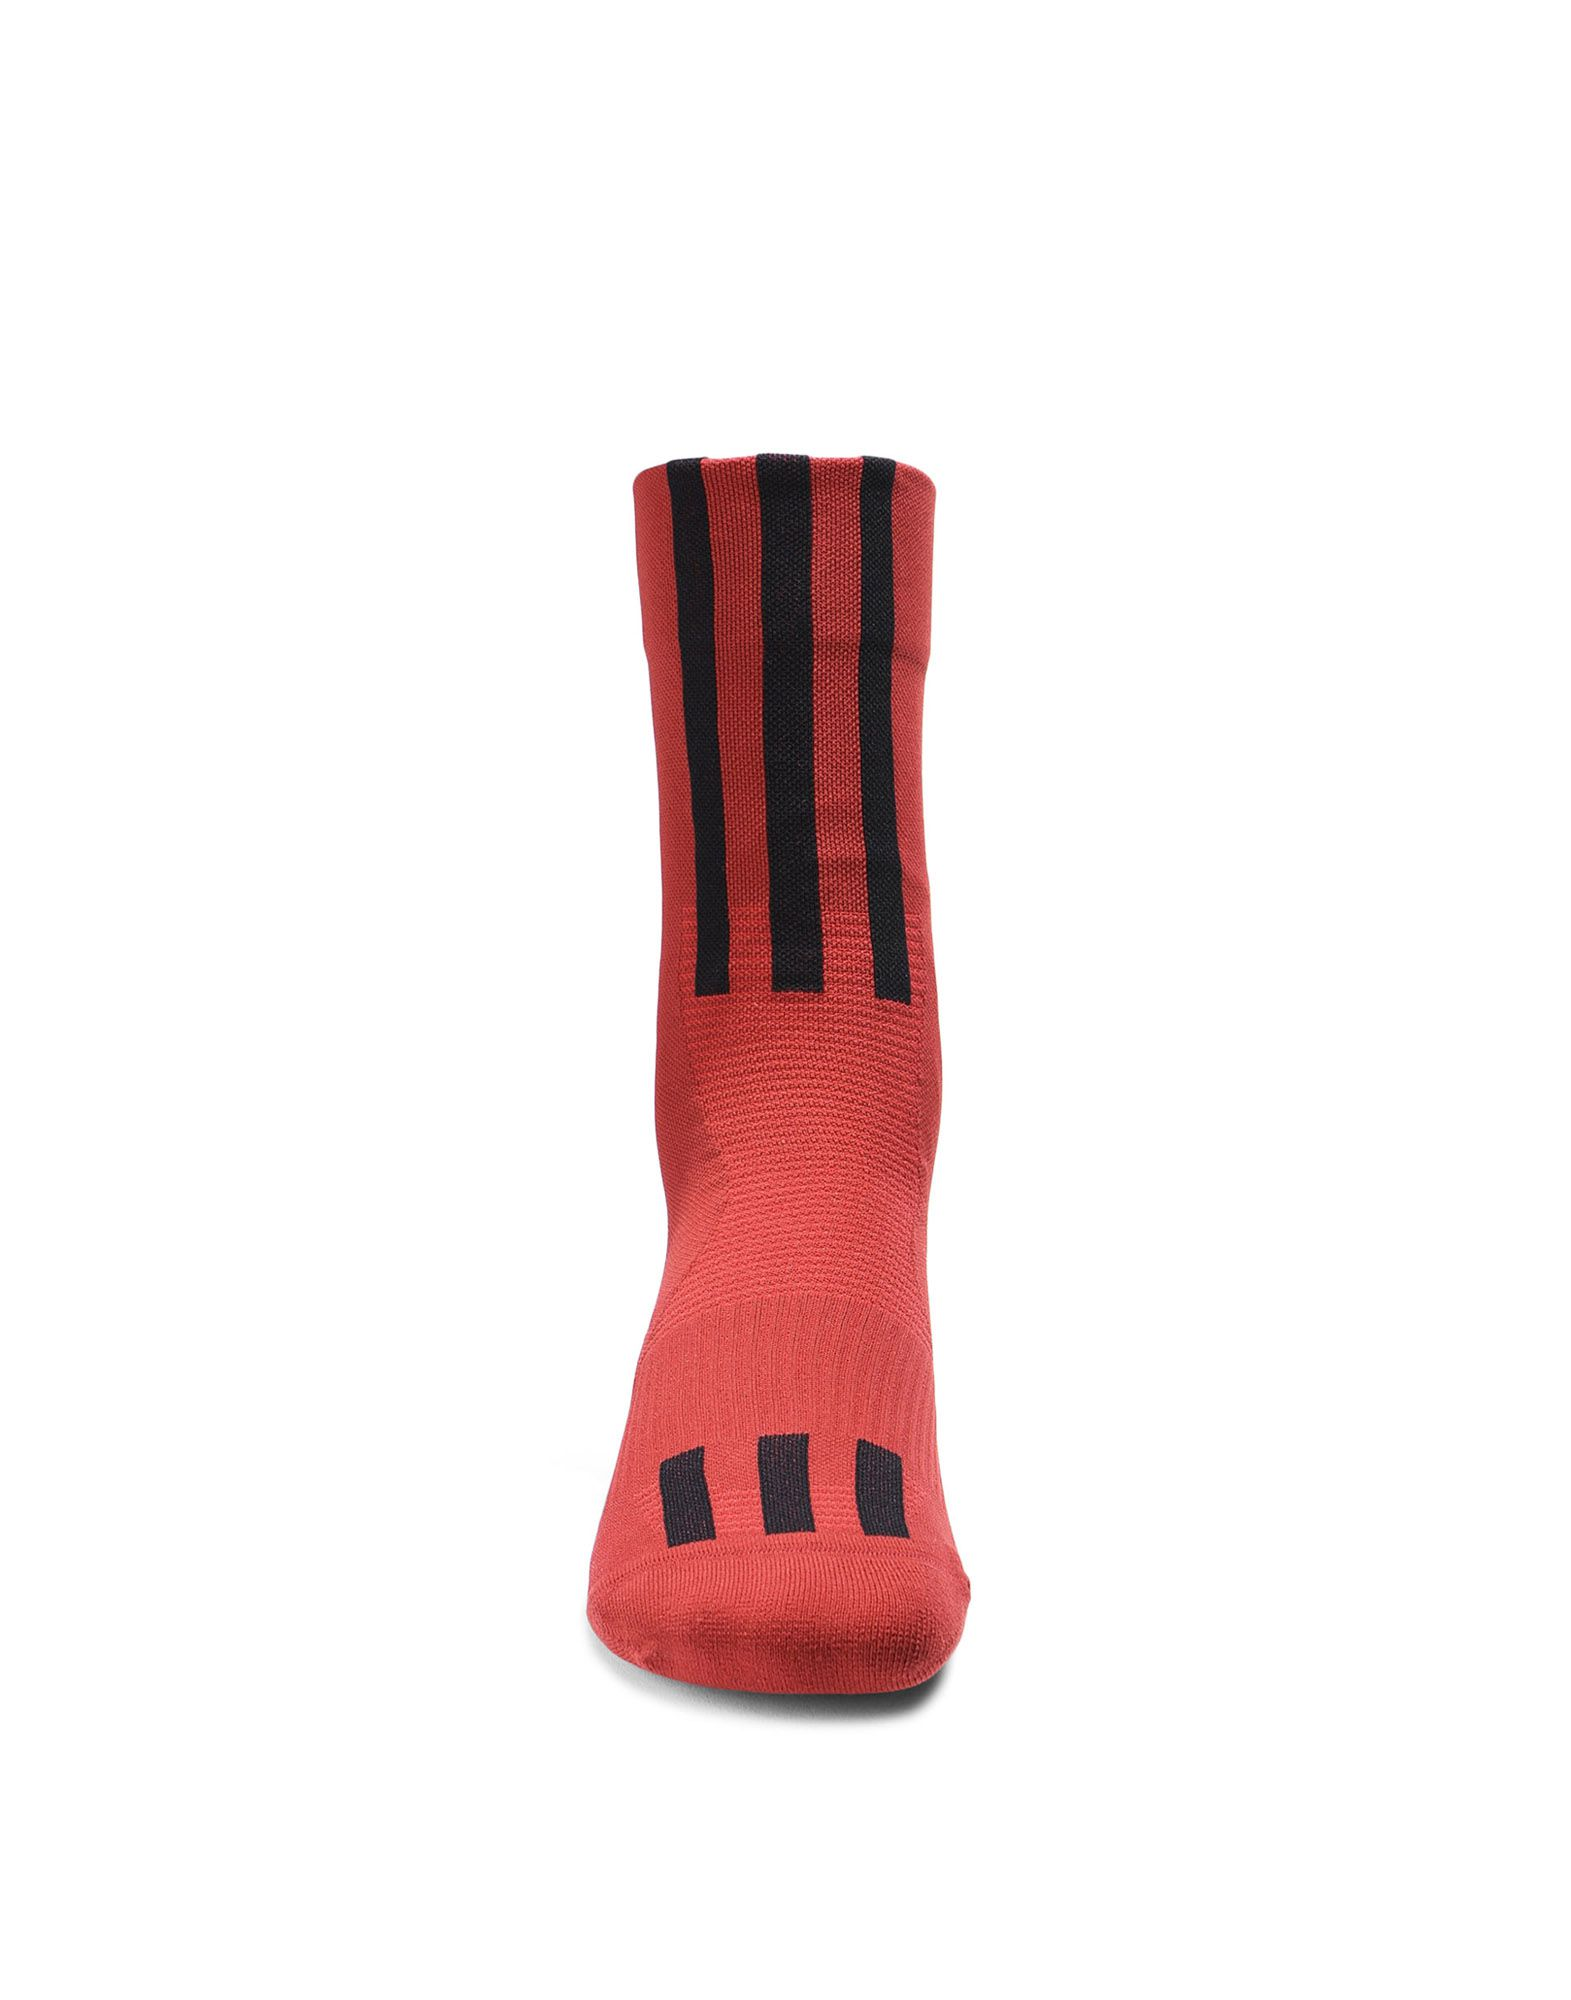 Y-3 Y-3 Tech Socks Calzini E r